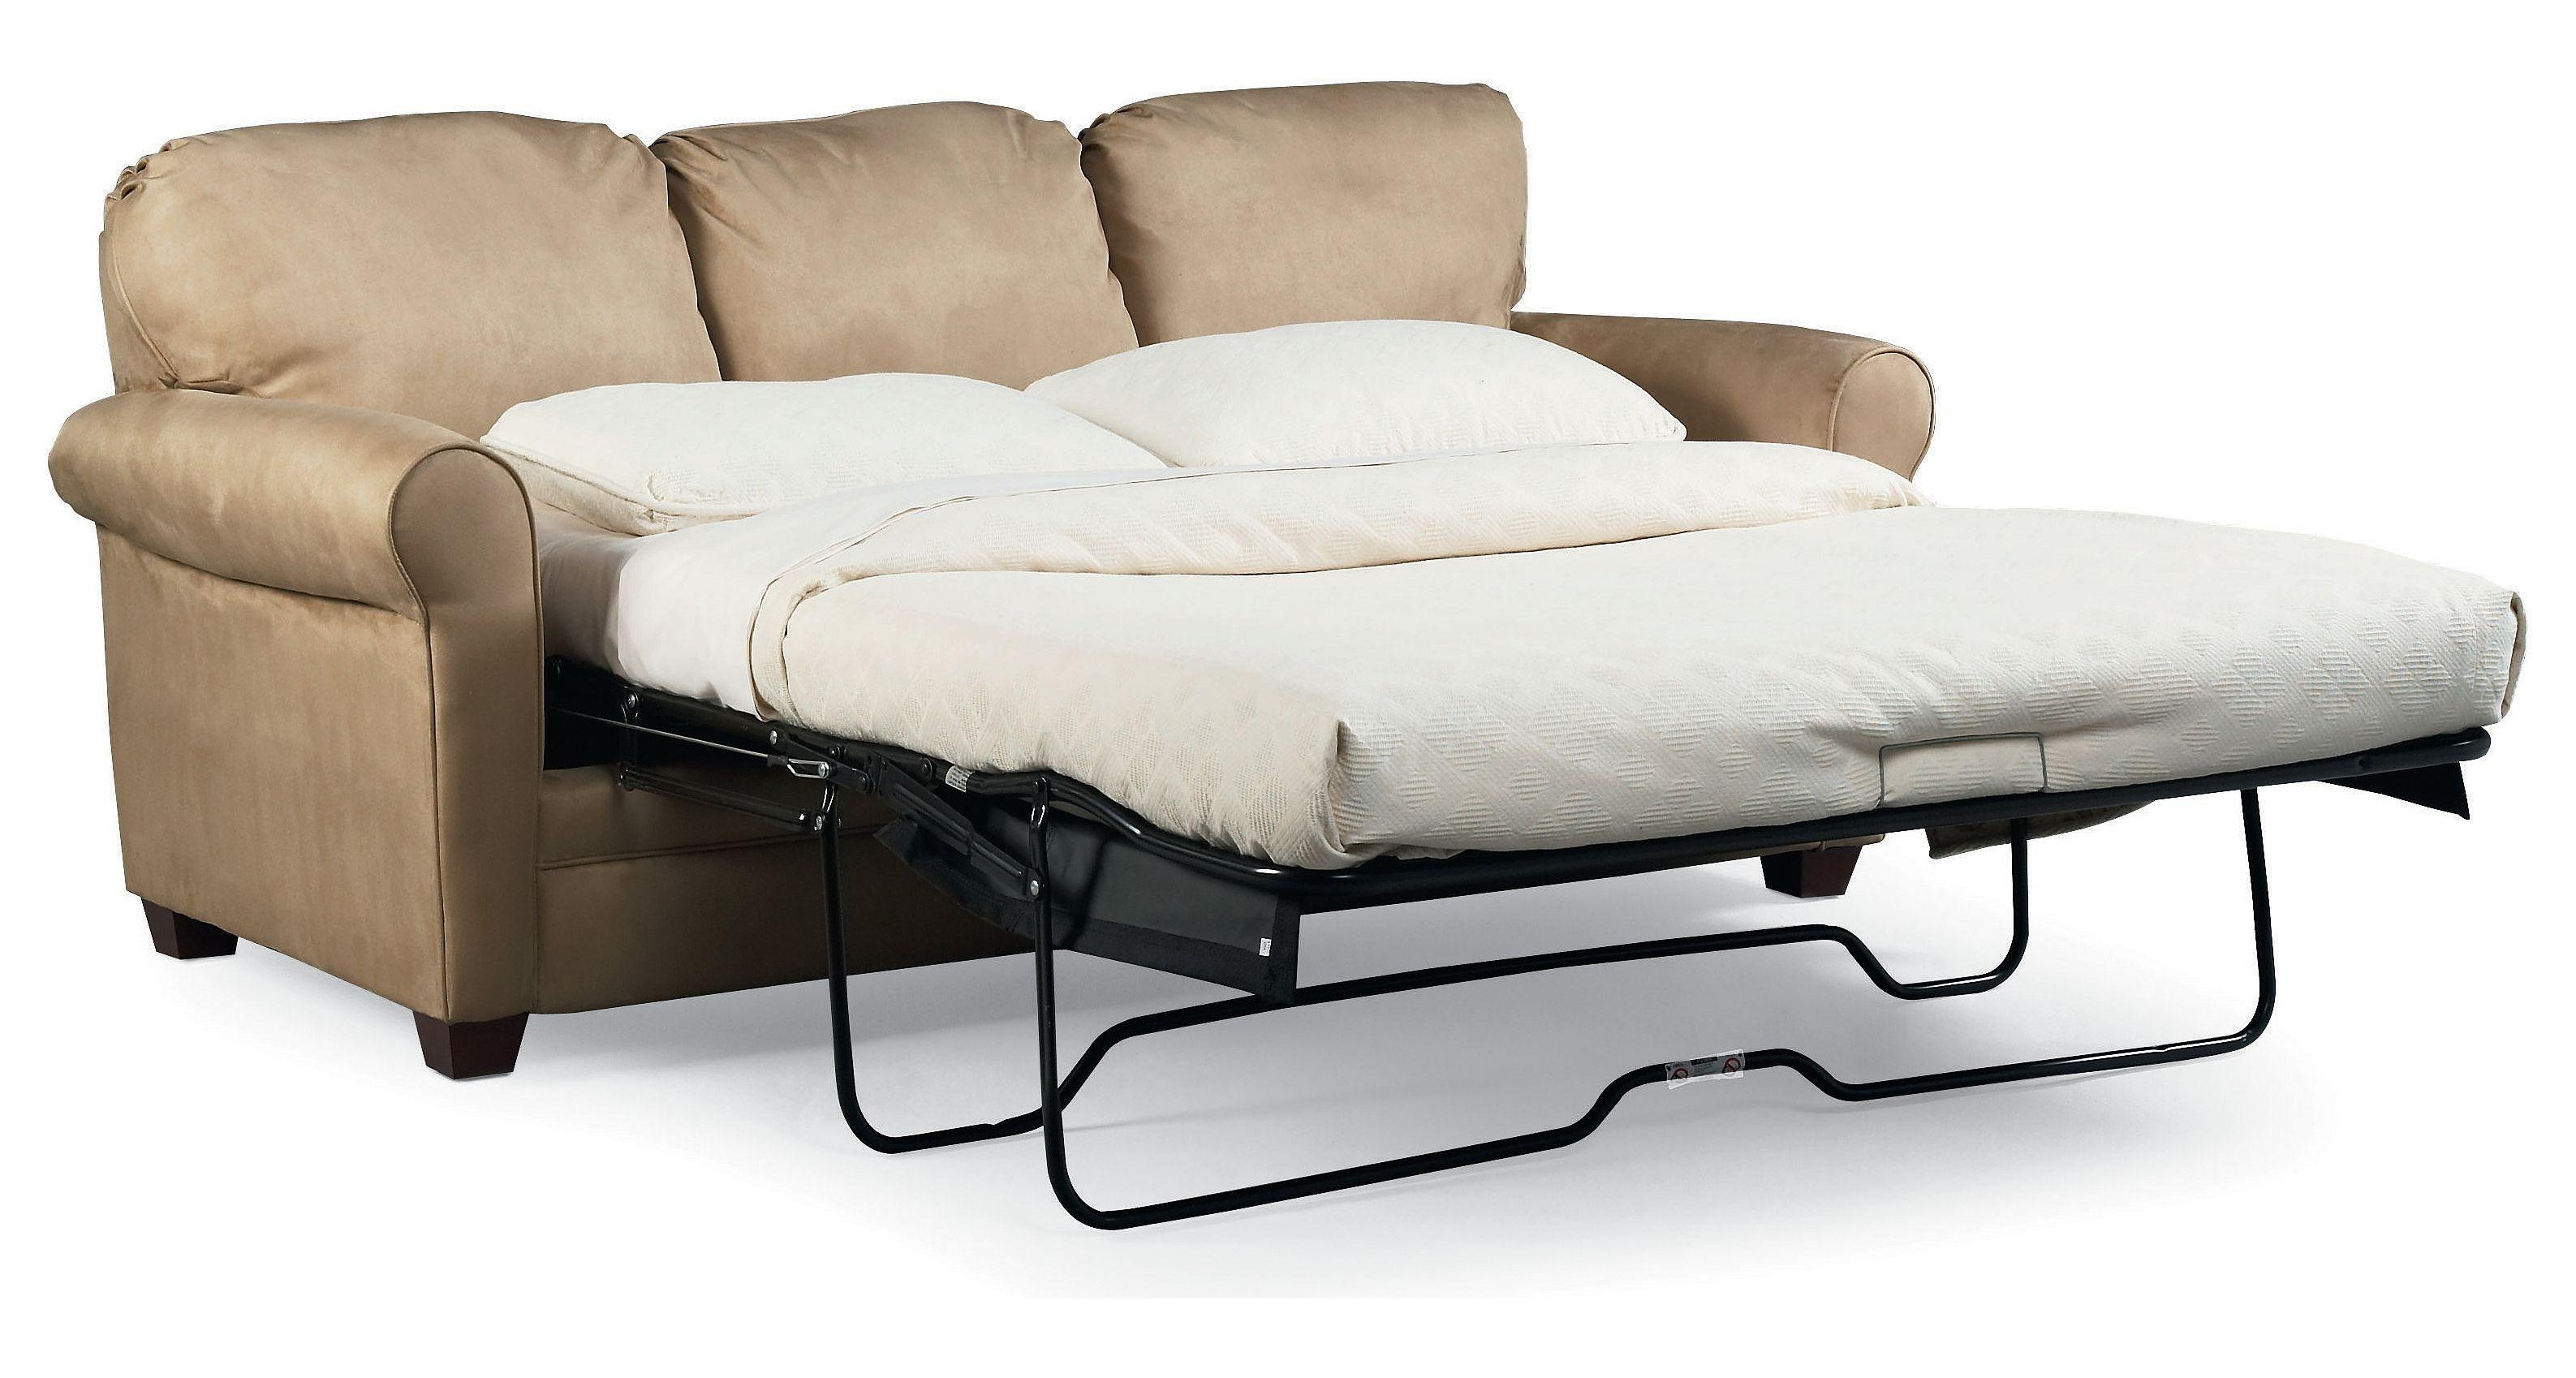 Queen Sofa Sleeper Mattress - Leather Sectional Sofa with regard to Sofa Sleepers Queen Size